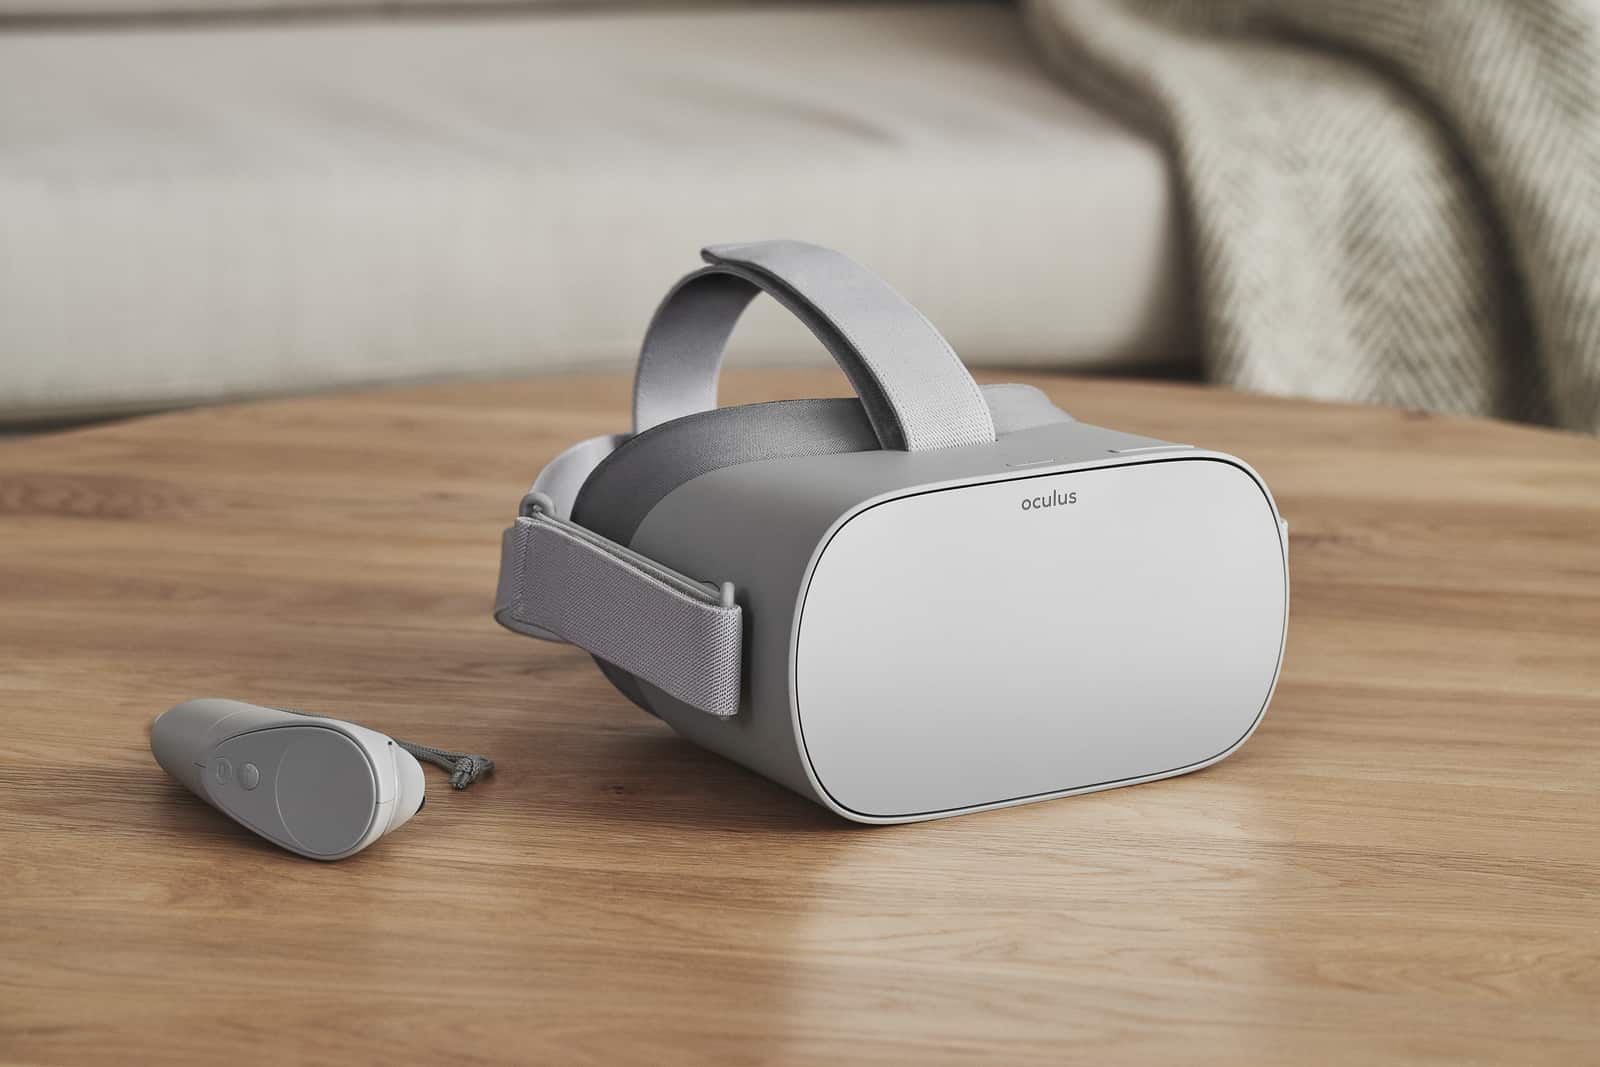 881e540bcb4b Oculus GO Review  Is It Any Good for Watching VR porn